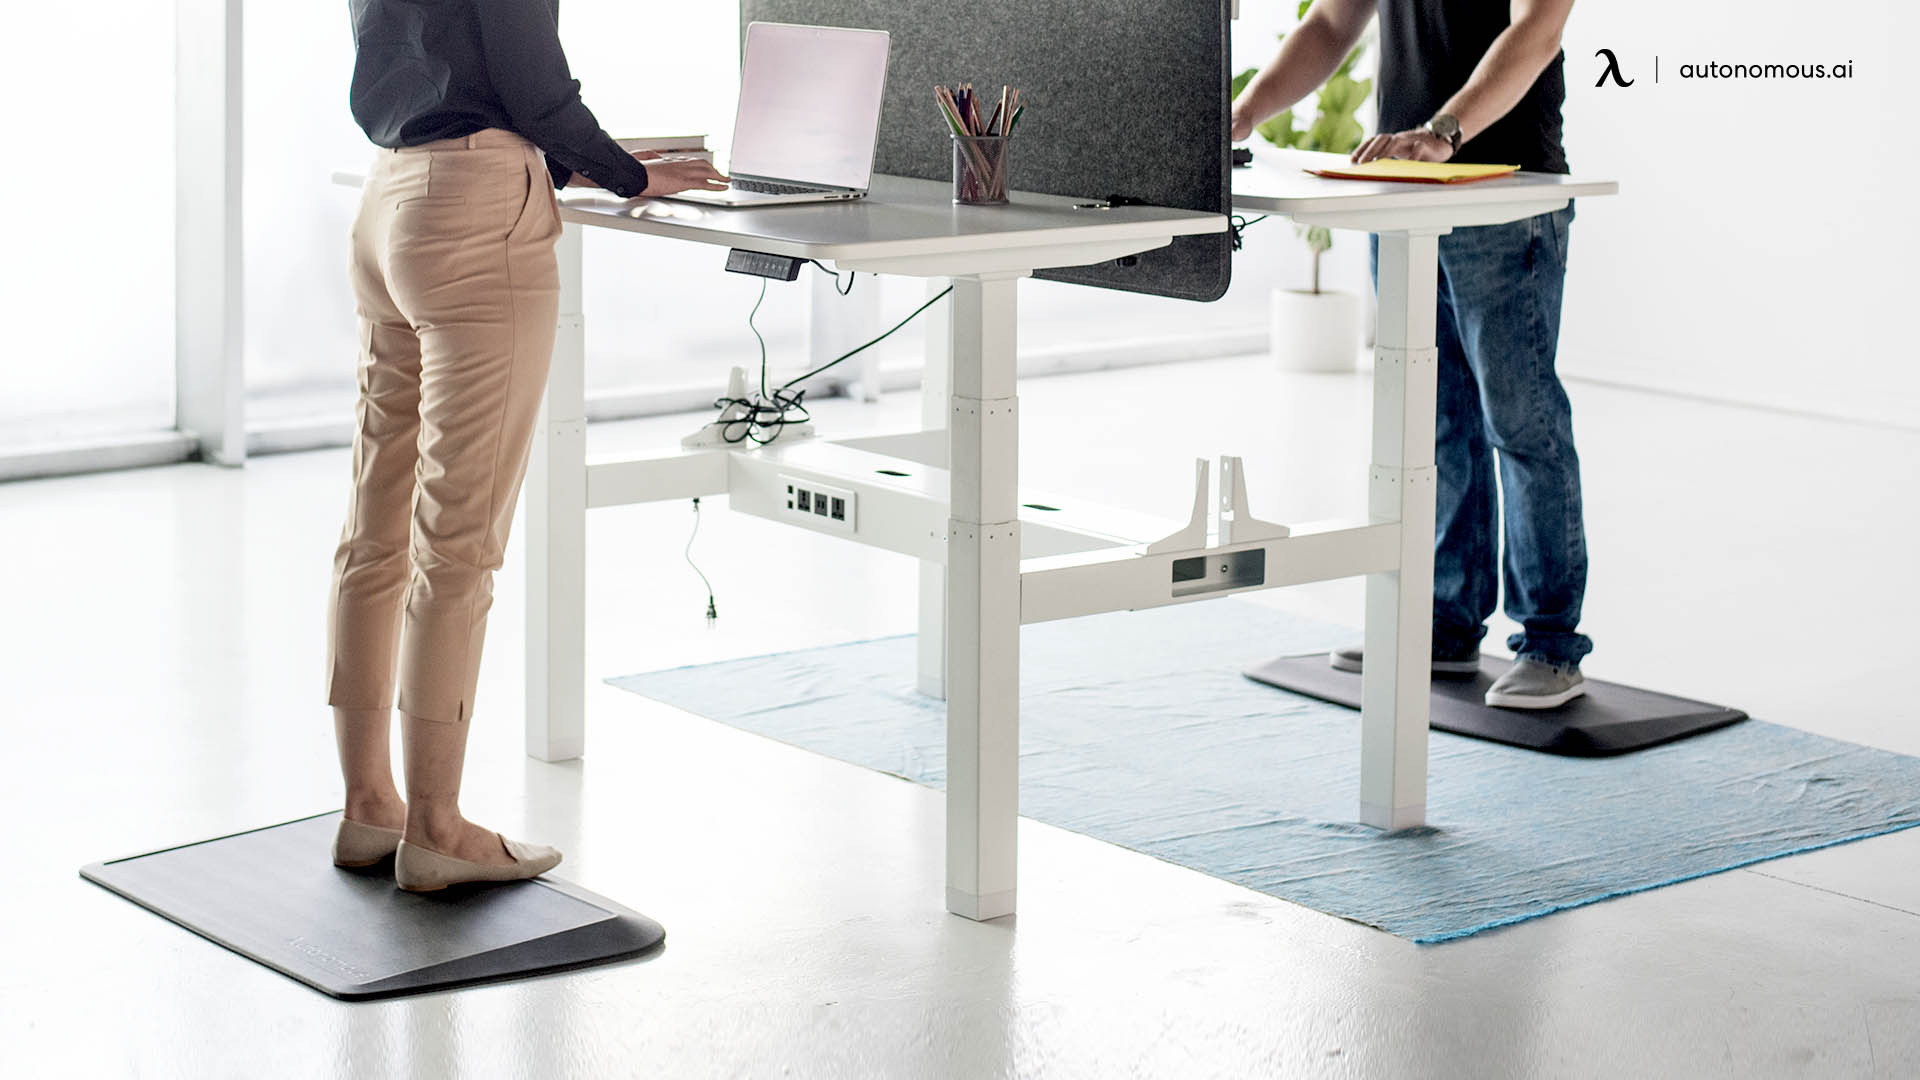 How Do You Use an Electric Standing Desk Properly?